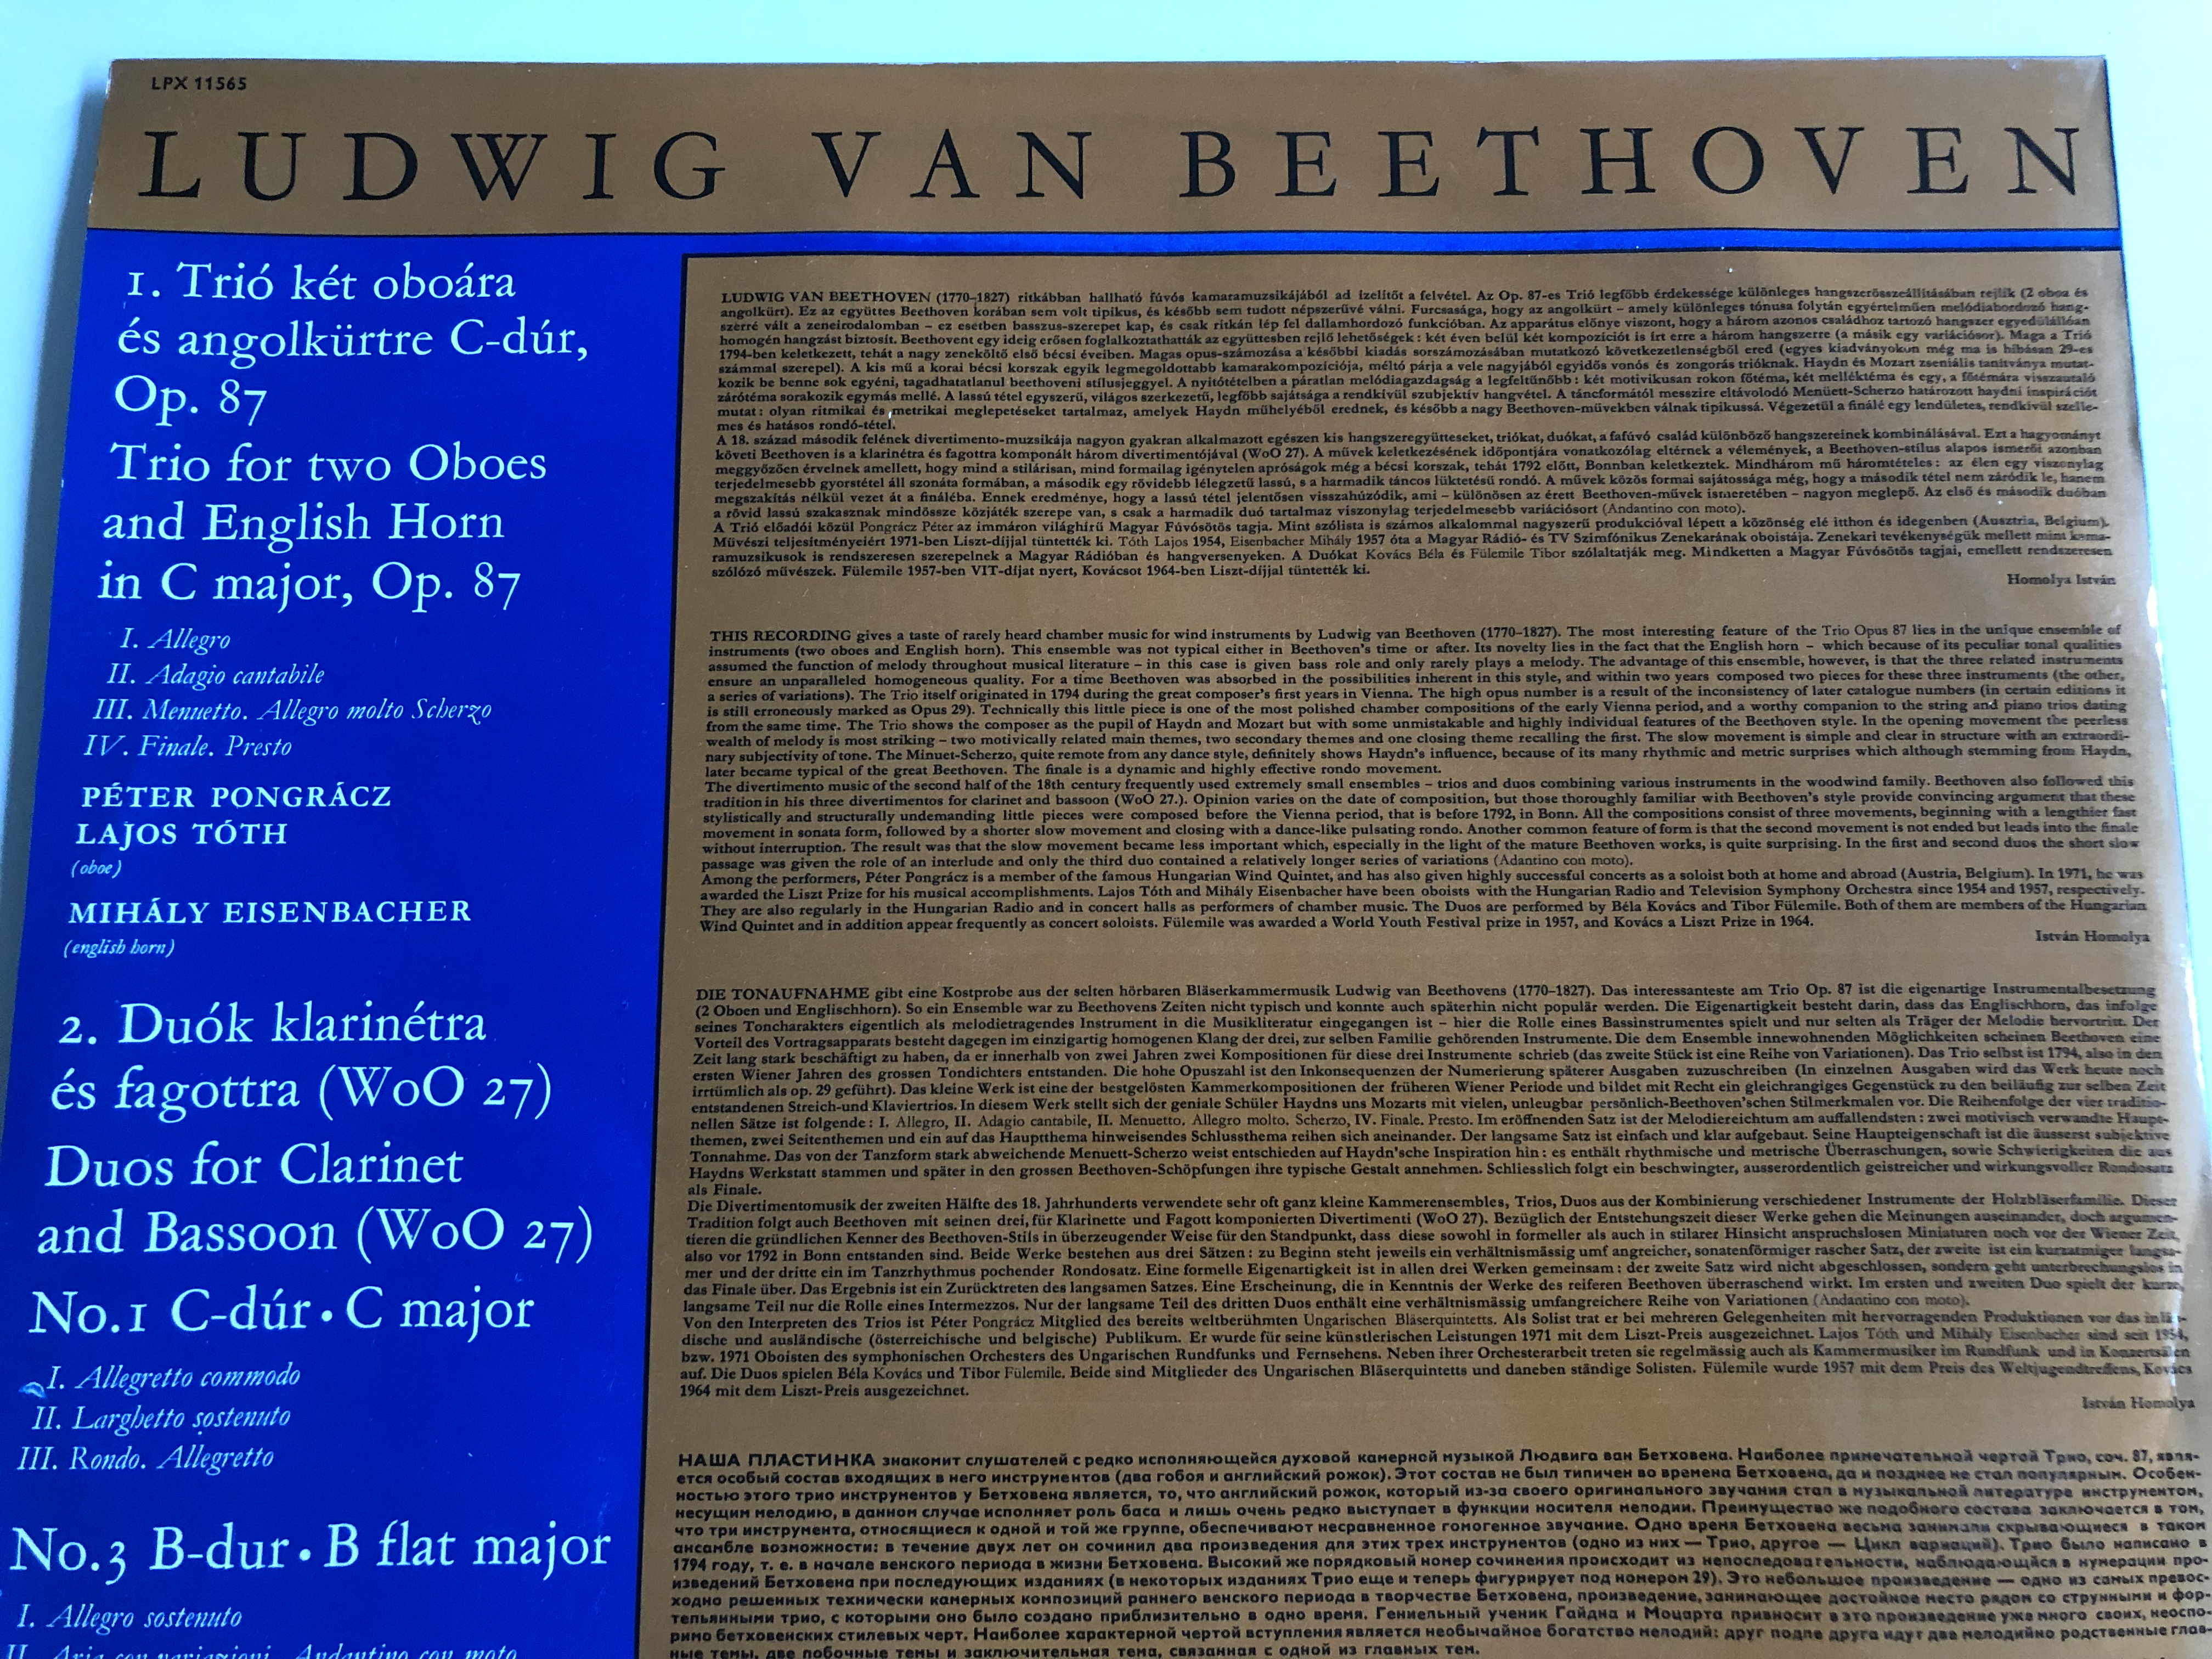 ludwig-van-beethoven-trio-for-two-oboes-and-english-horn-in-c-major-op.-87-duos-for-clarinet-and-bassoon-nos-1-and-3-woo-27-hungaroton-lp-stereo-mono-lpx-11565-3-.jpg